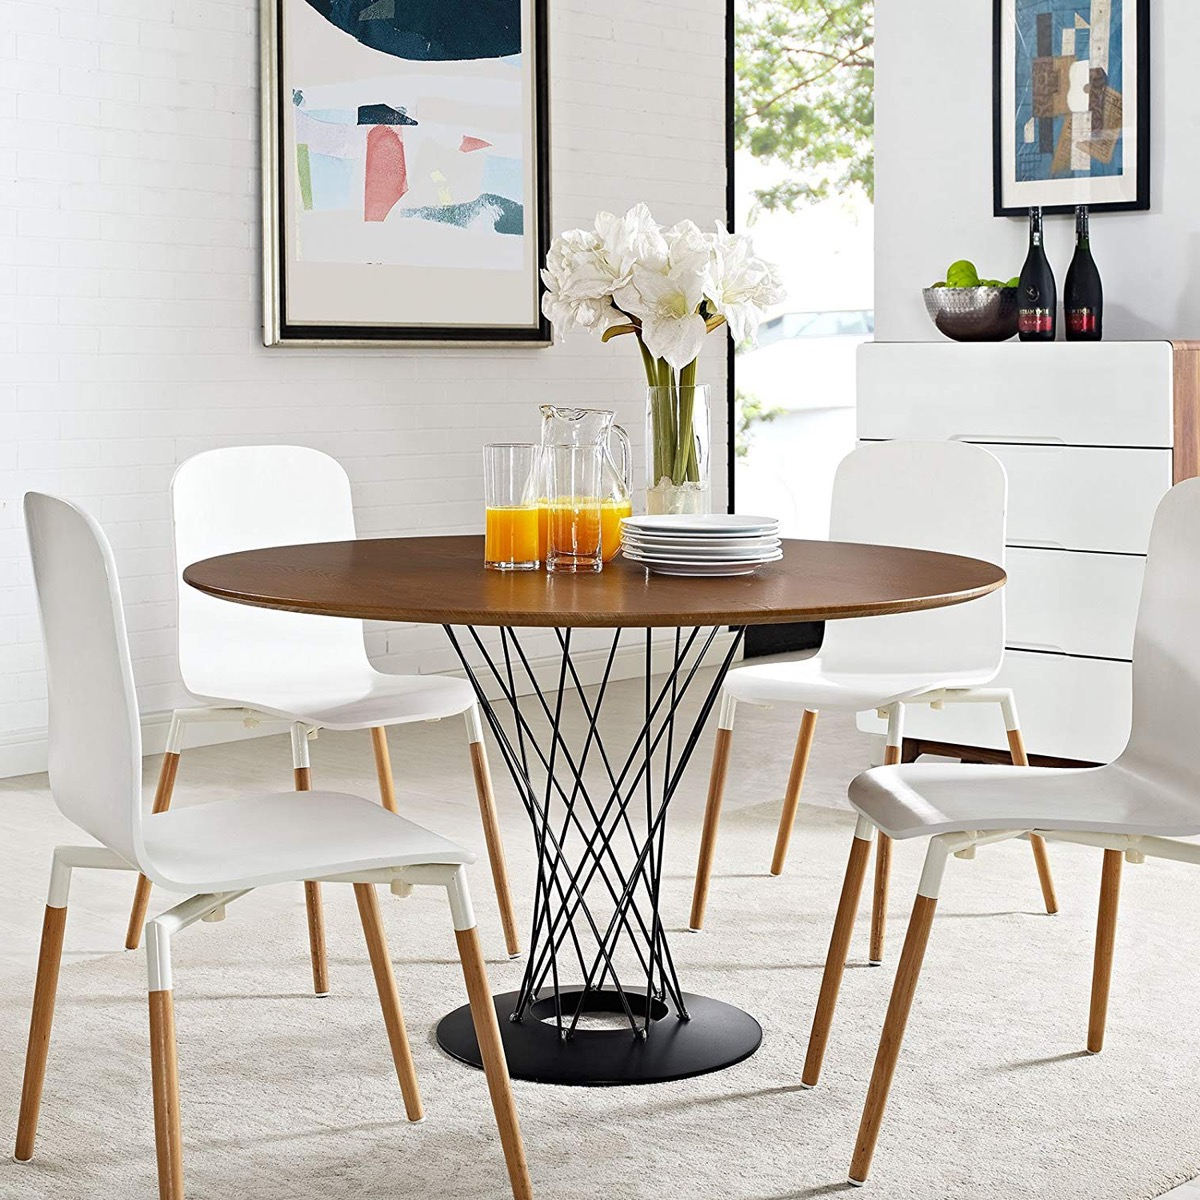 Widely Used Eames Style Dining Tables With Chromed Leg And Tempered Glass Top In 51 Round Dining Tables That Save On Space But Never Skimp On (View 30 of 30)